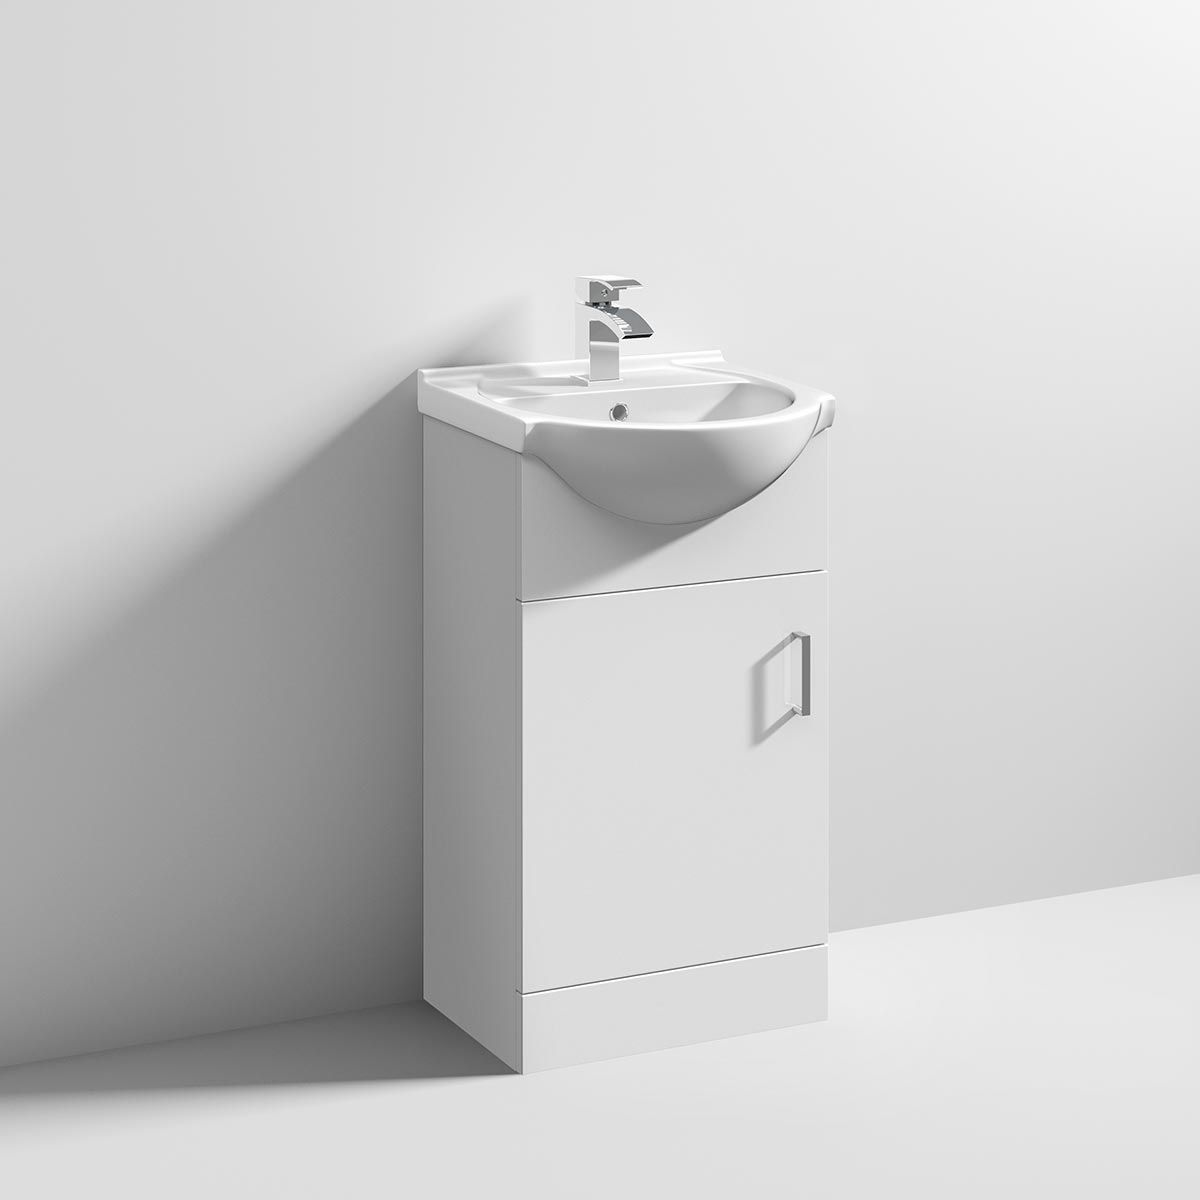 Nuie High Gloss White Vanity Unit with Standard Basin 450mm